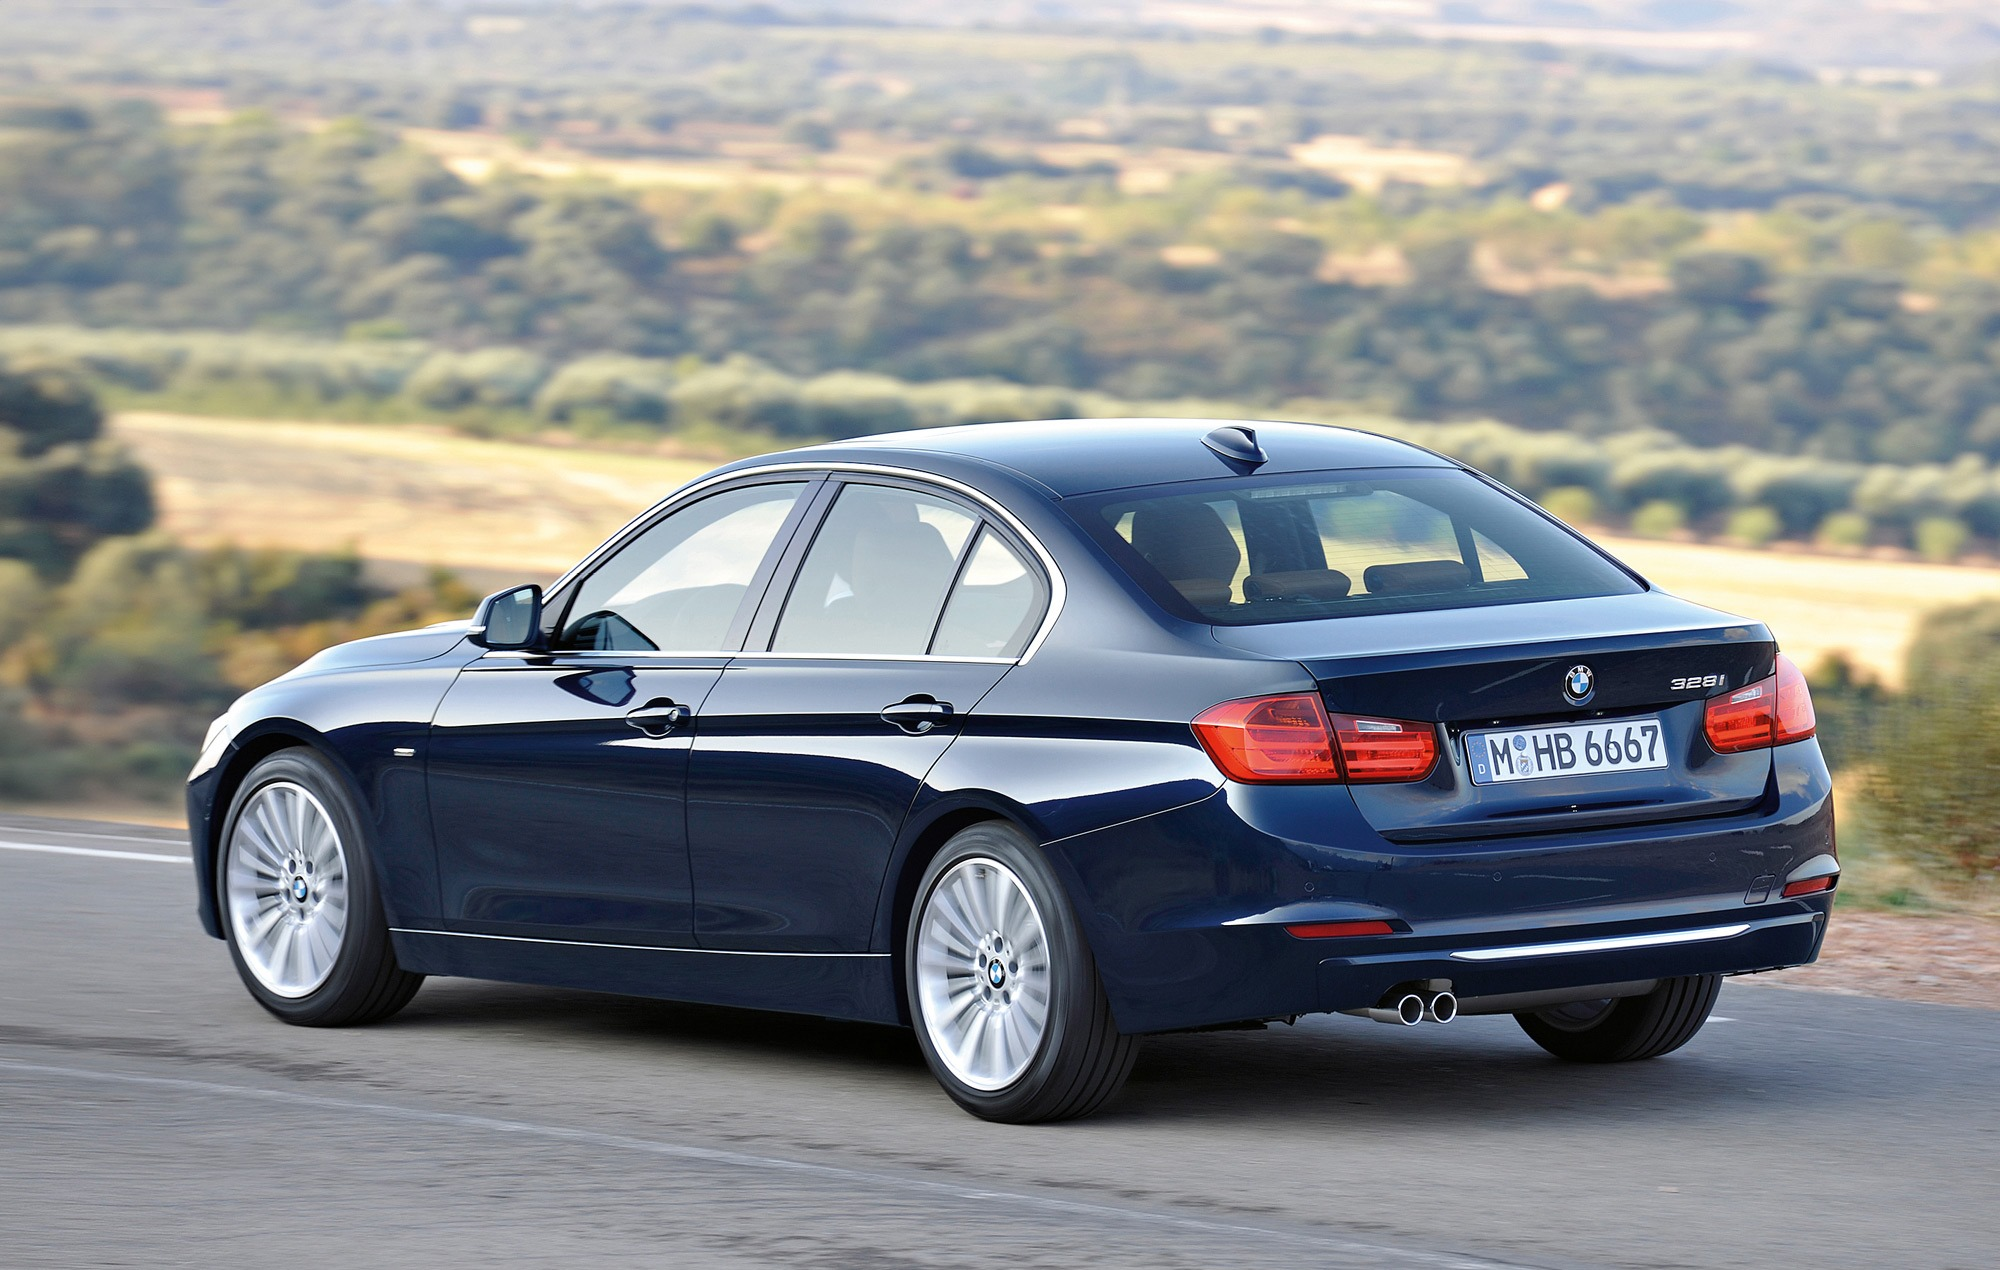 BMW 3 Series 2019 Exterior Rear Side View